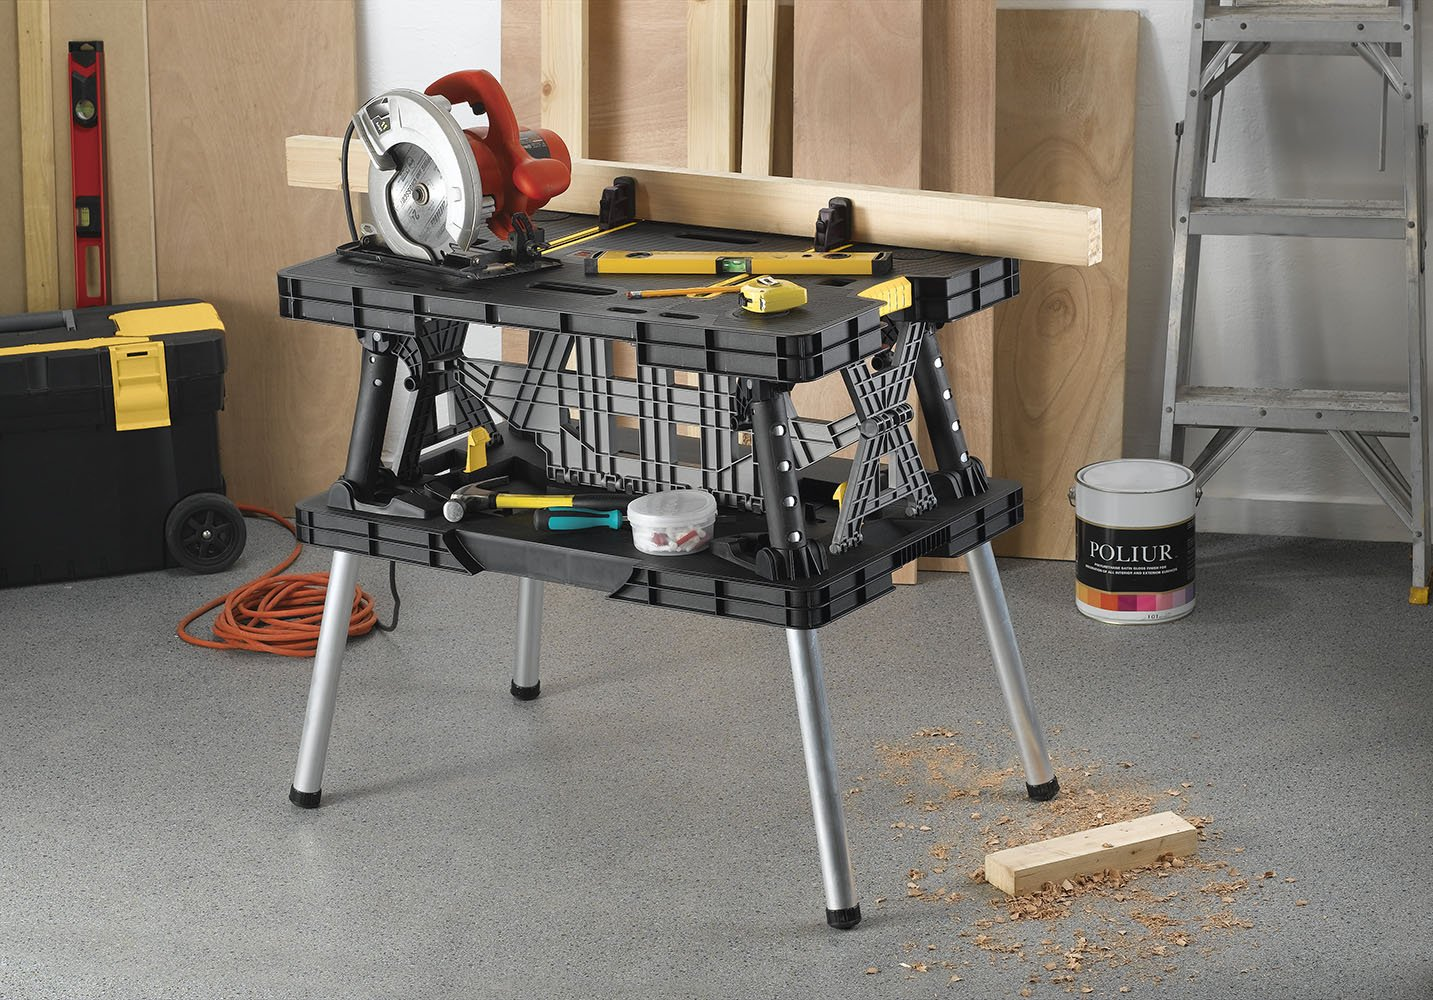 Keter Folding Table Work Bench For Woodworking Tools & Accessories with Clamps